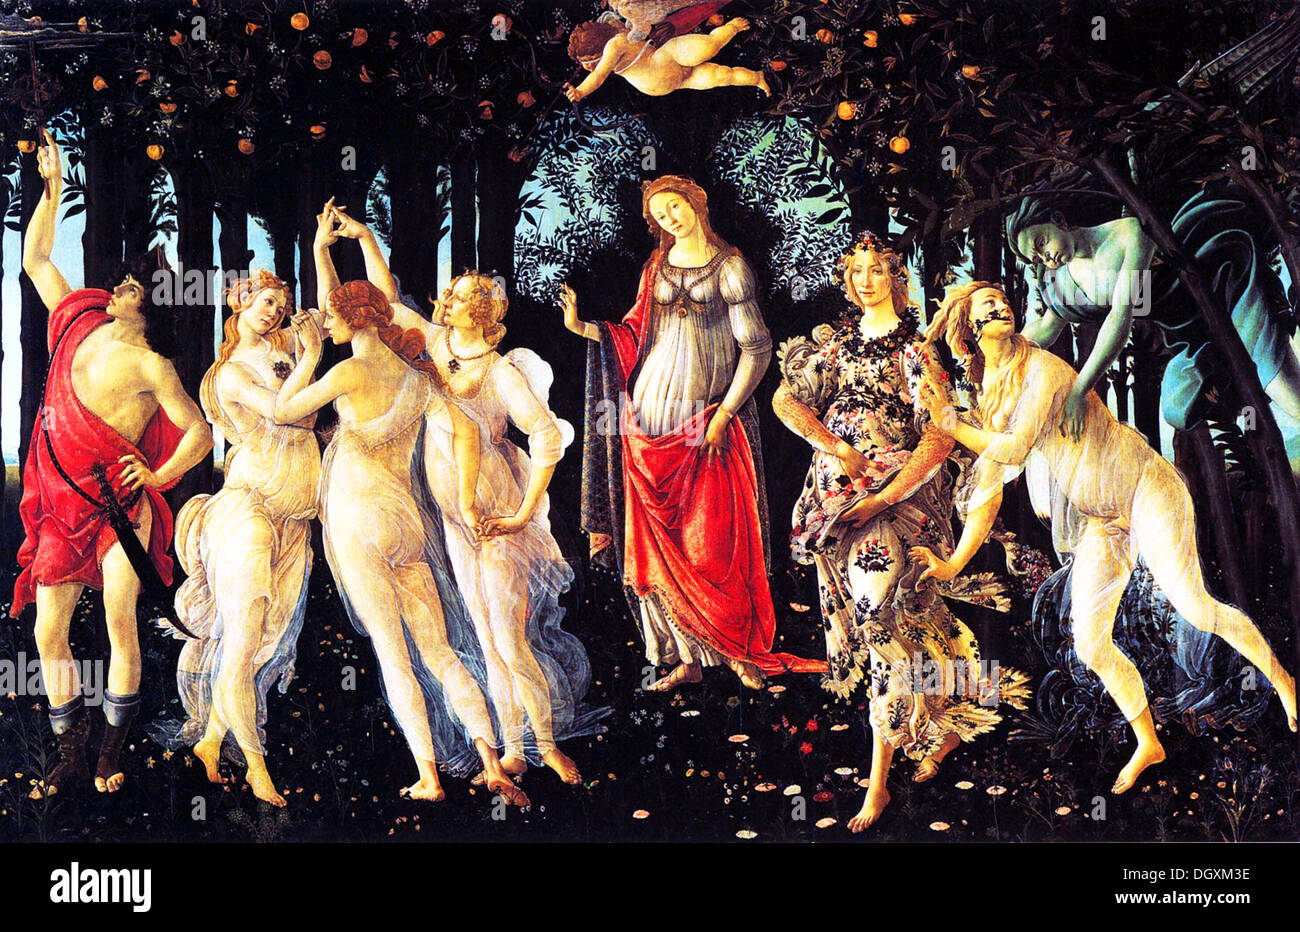 La Primavera - by Sandro Botticelli, 1482 - Editorial use only. - Stock Image